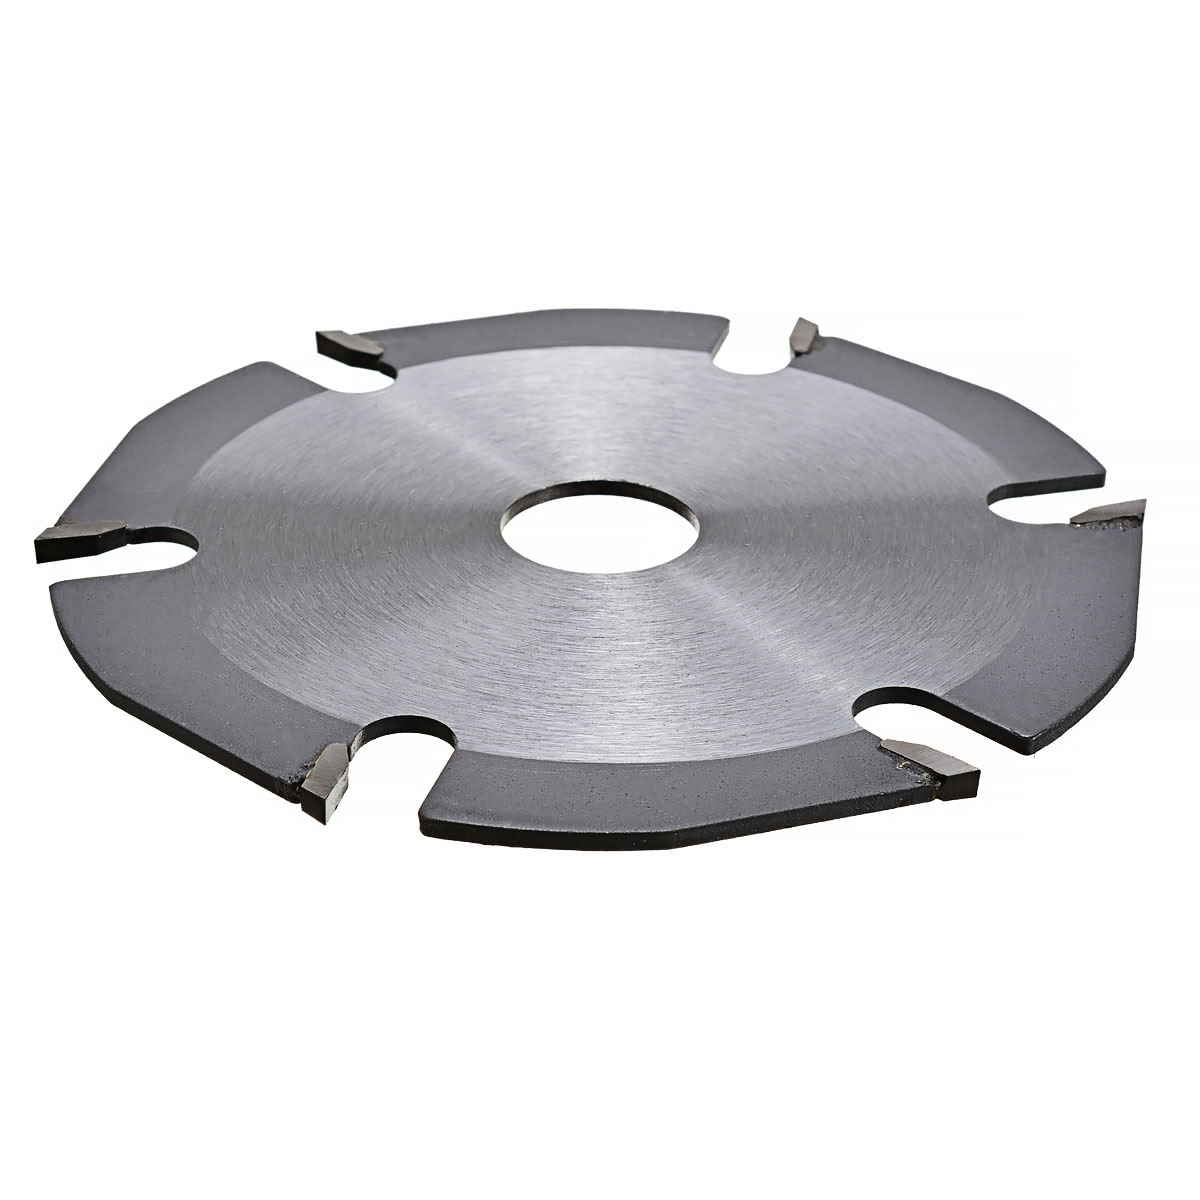 125mm Circular Saw Blade Multitool Carbide Tipped 6T Wood Carving Cutting Grinder Saw Disc Blades for Woodworking Angle Grinders tovia 125mm carbide saw blades wood cutting disk cutting wood saw disc multitool wood cutter angle grinder for wood